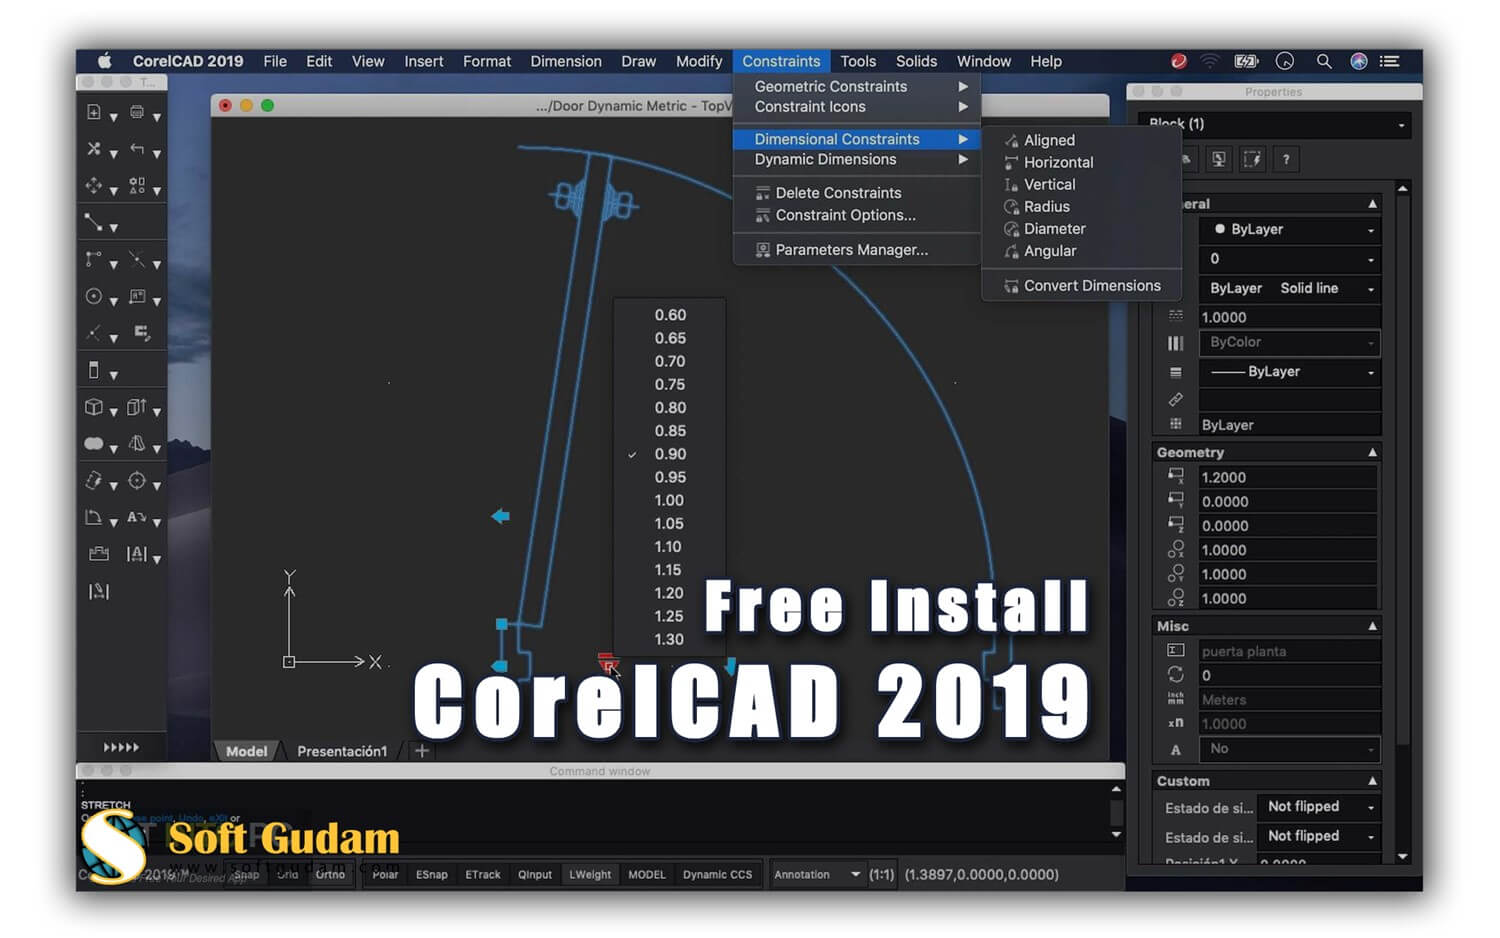 CorelCAD 2019 Download